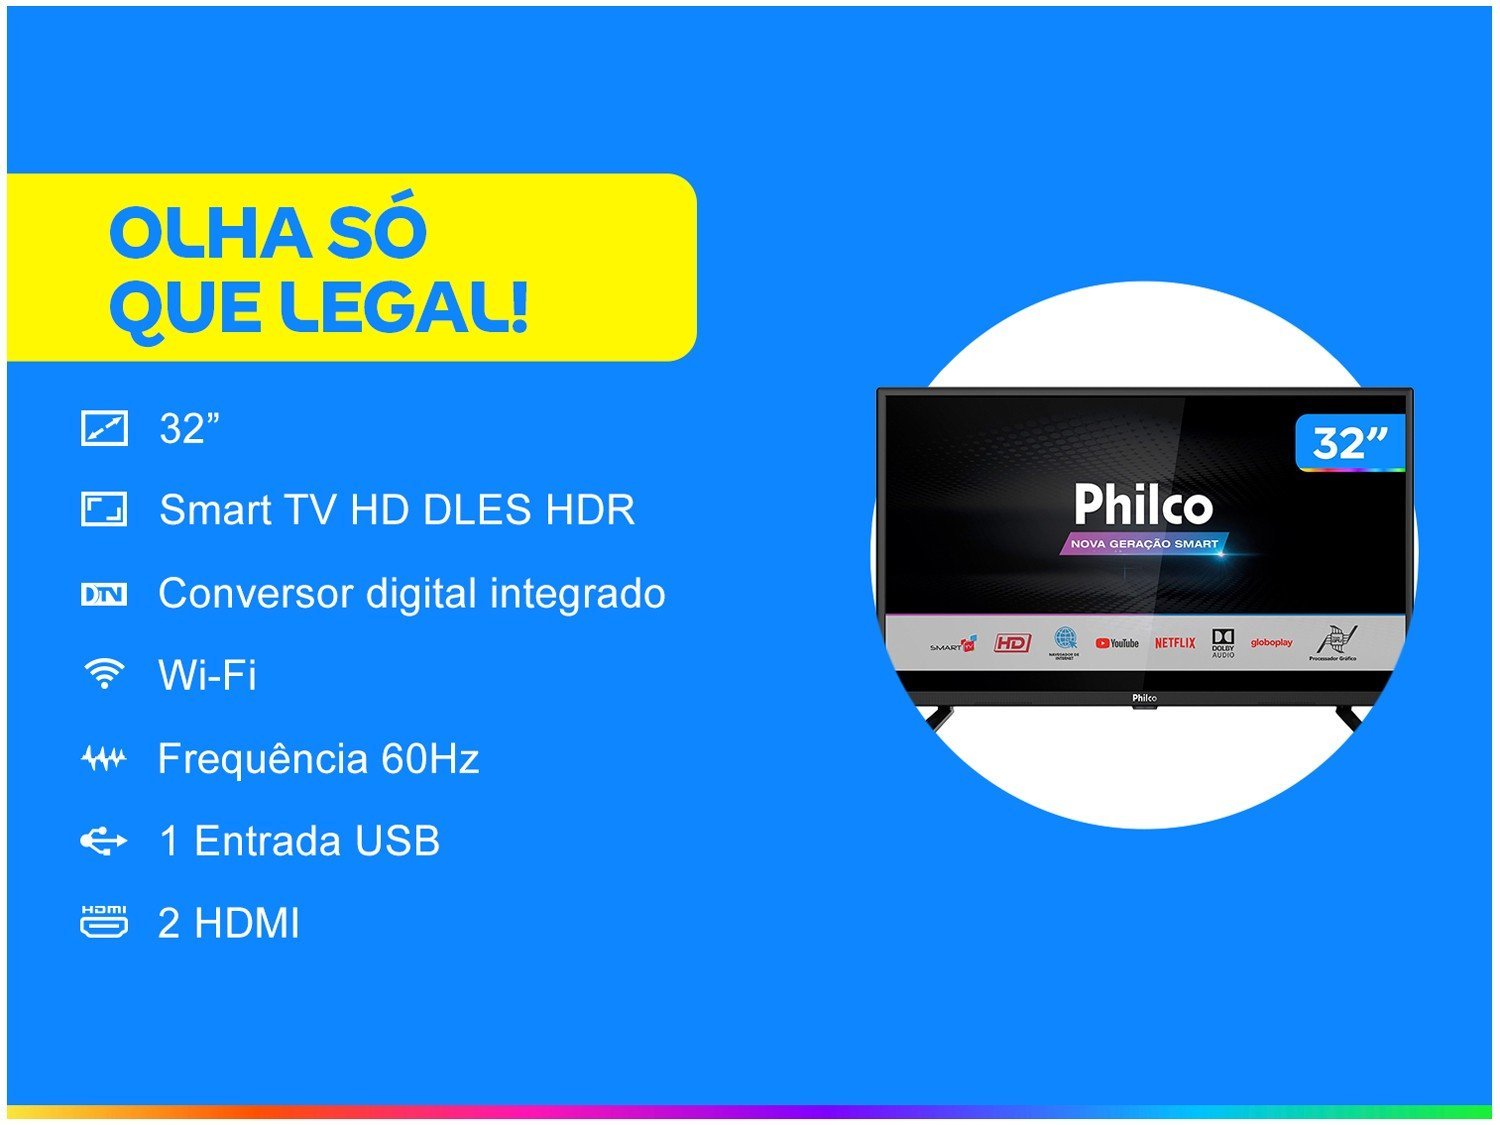 "Smart TV LED 32"" HD Philco PTV32G52S com Netflix, Dolby Audio, Wi-fi, Midiacast, Processador Quad-Core, Entradas HDMI e USB - 7"